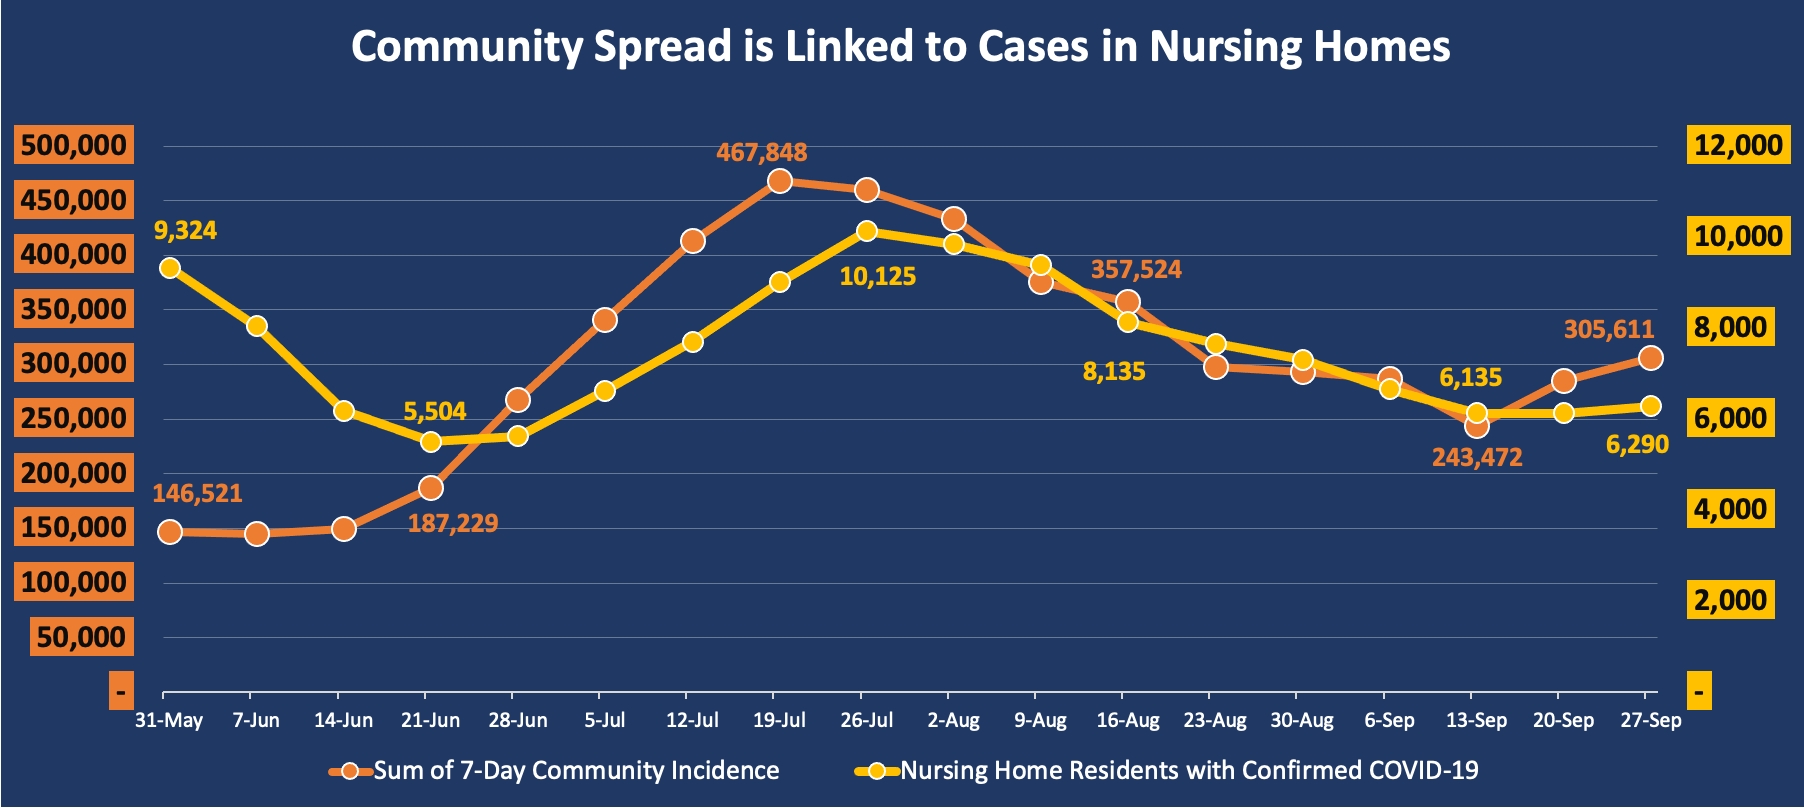 Community spread is linked to cases in nursing homes.